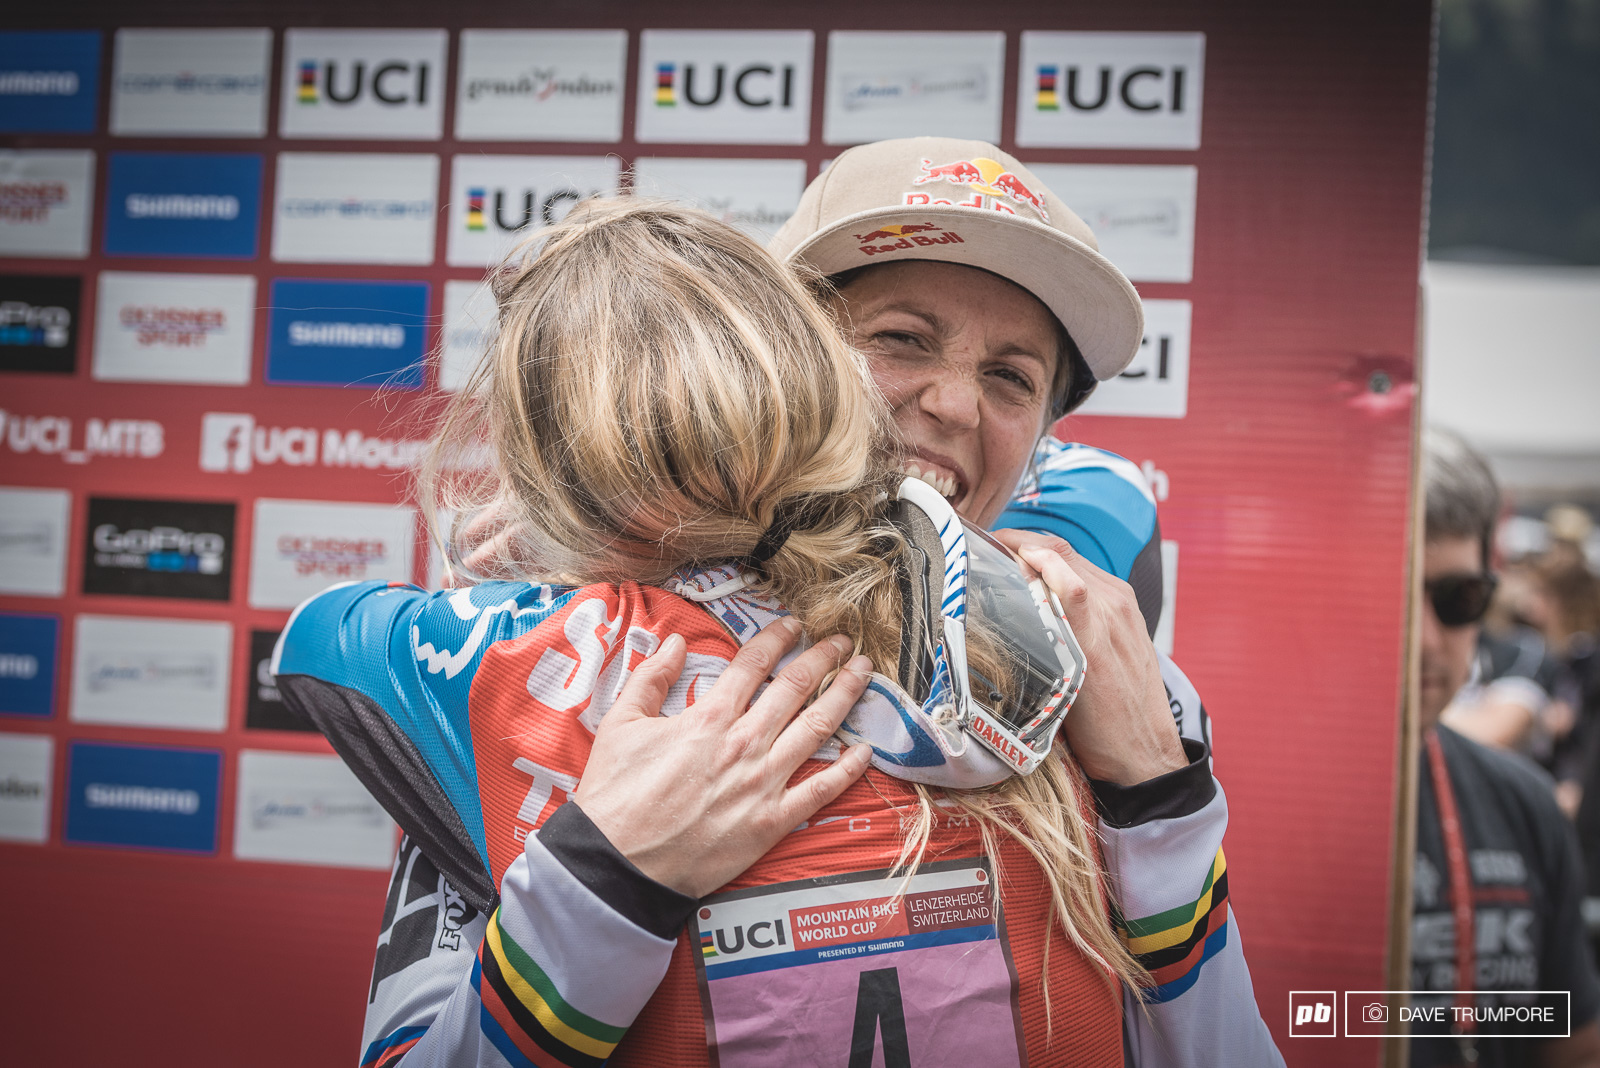 The current champion gives the next generation a hug after the pair went one-two here in lenzerheide.